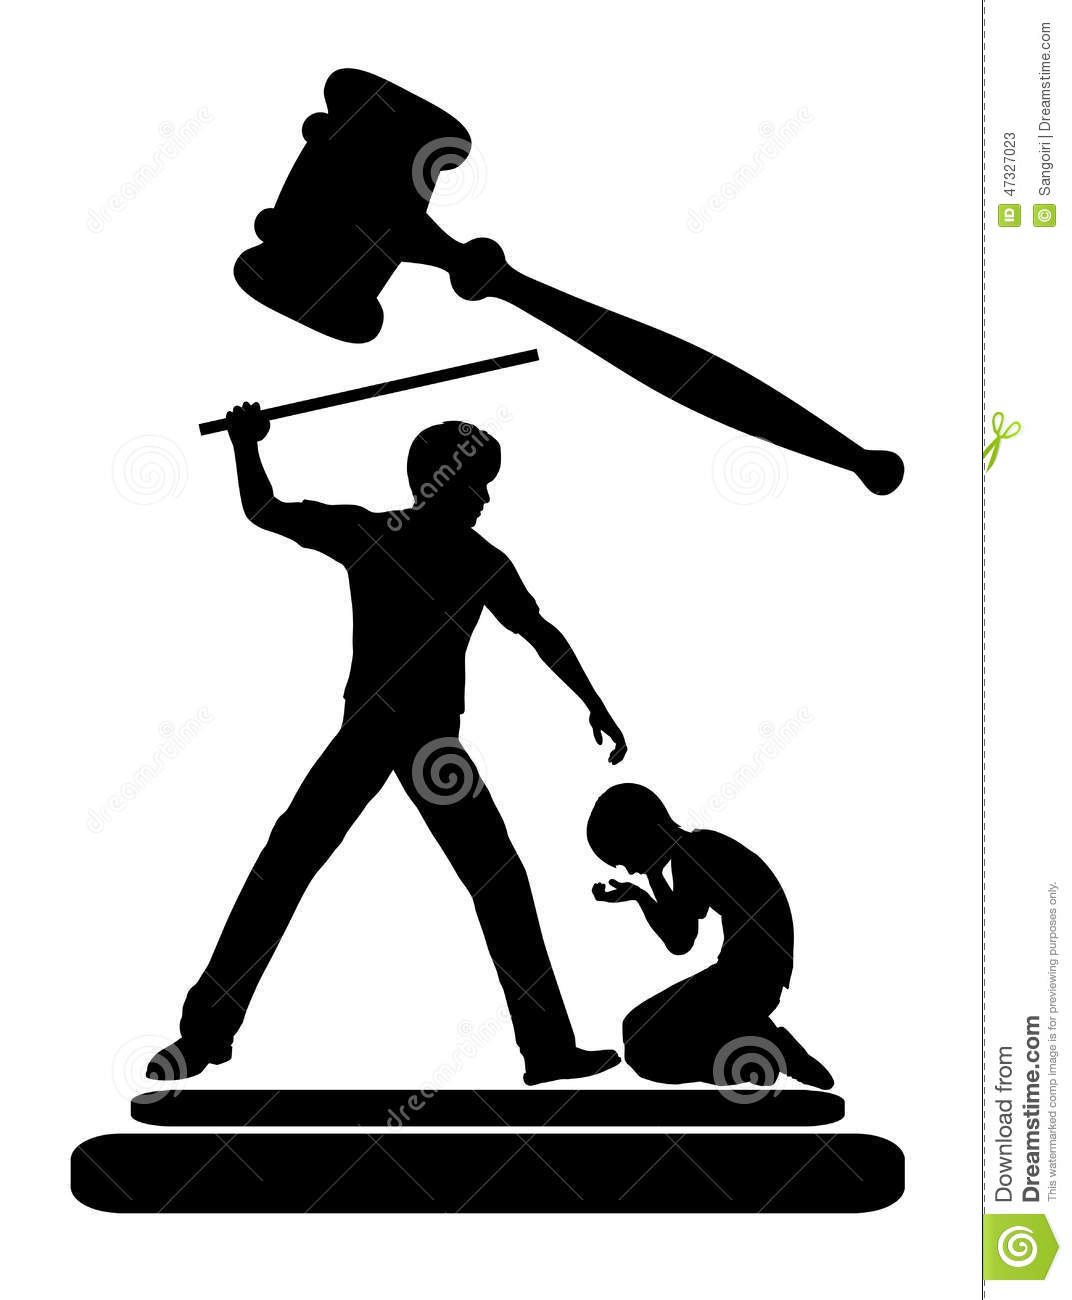 an analysis of the concept of corporal punishment in the united states The prevalence of corporal punishment the rate at which corporal punishment occurs in schools varies from state to state - in some states the practice is virtually non-existent and illegal in others, thousands of young people are struck every year.